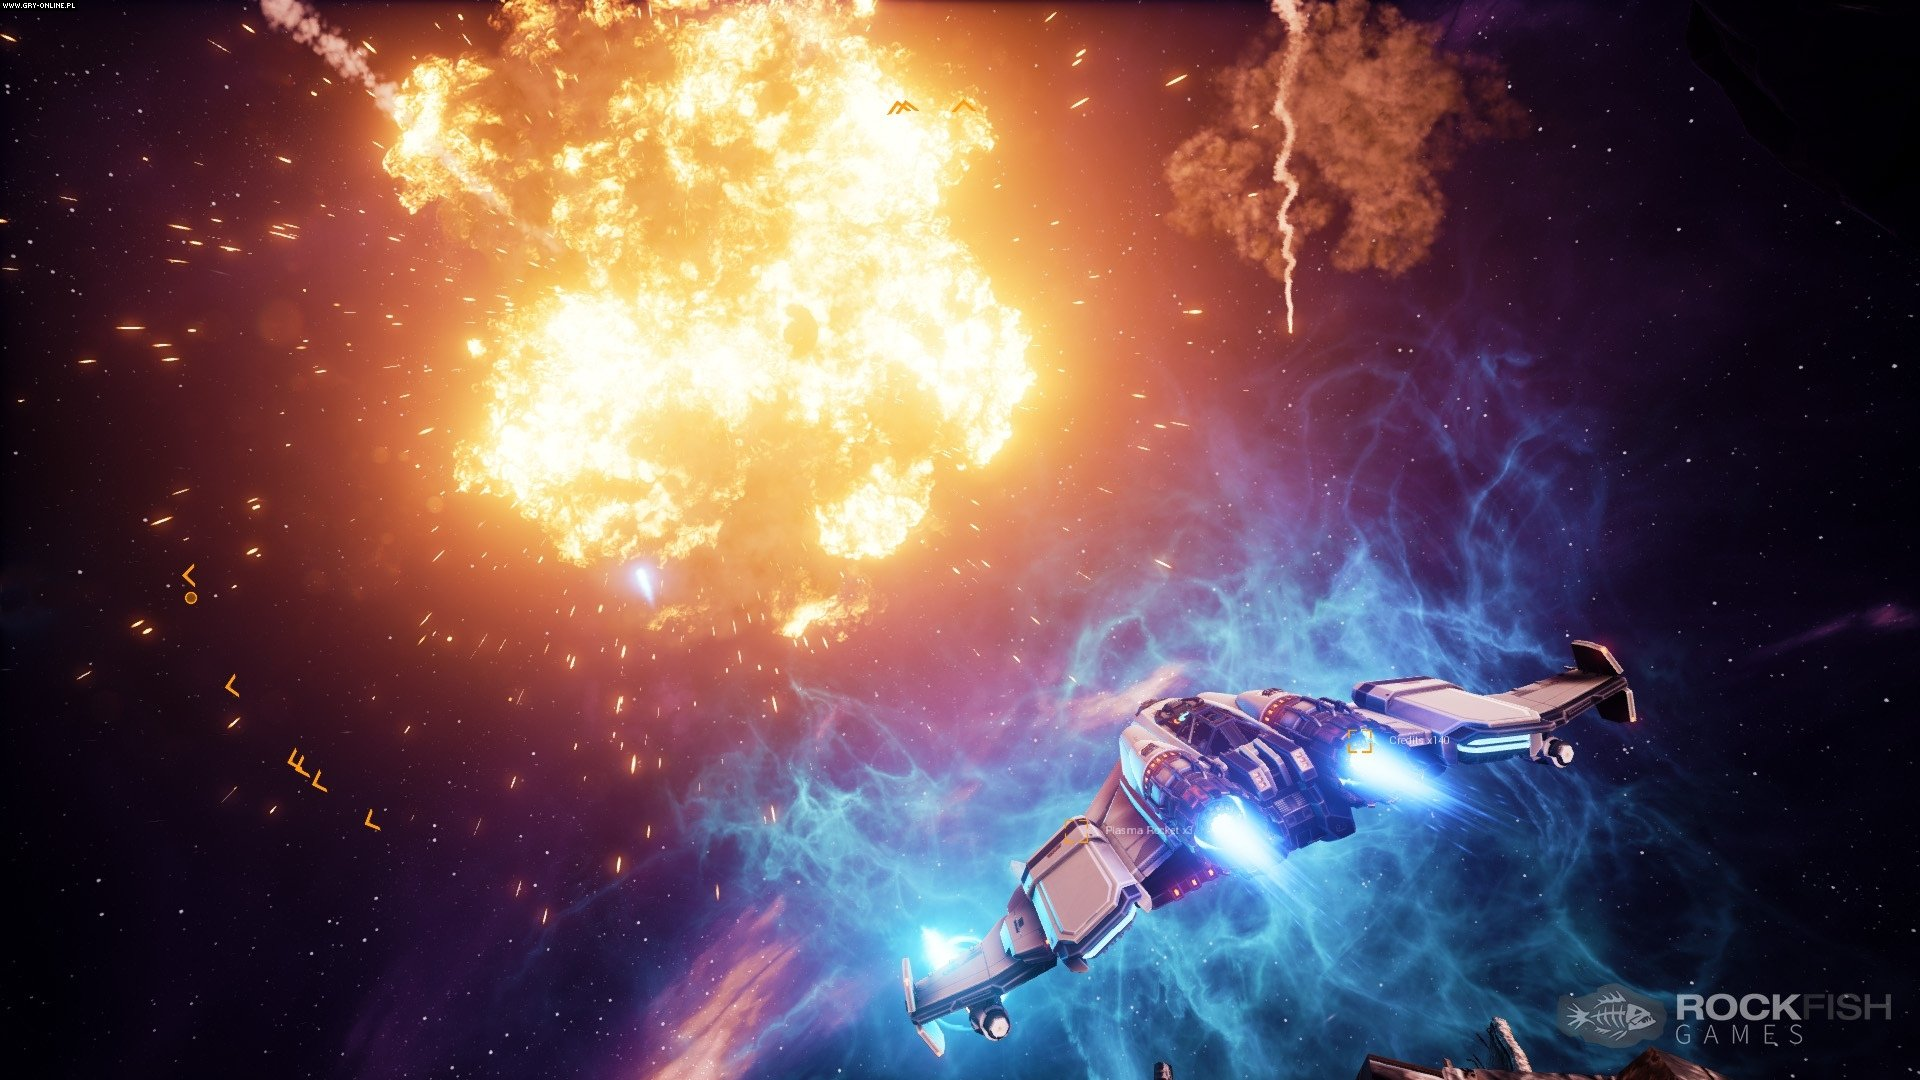 Everspace PC, XONE Games Image 92/92, Rockfish Games